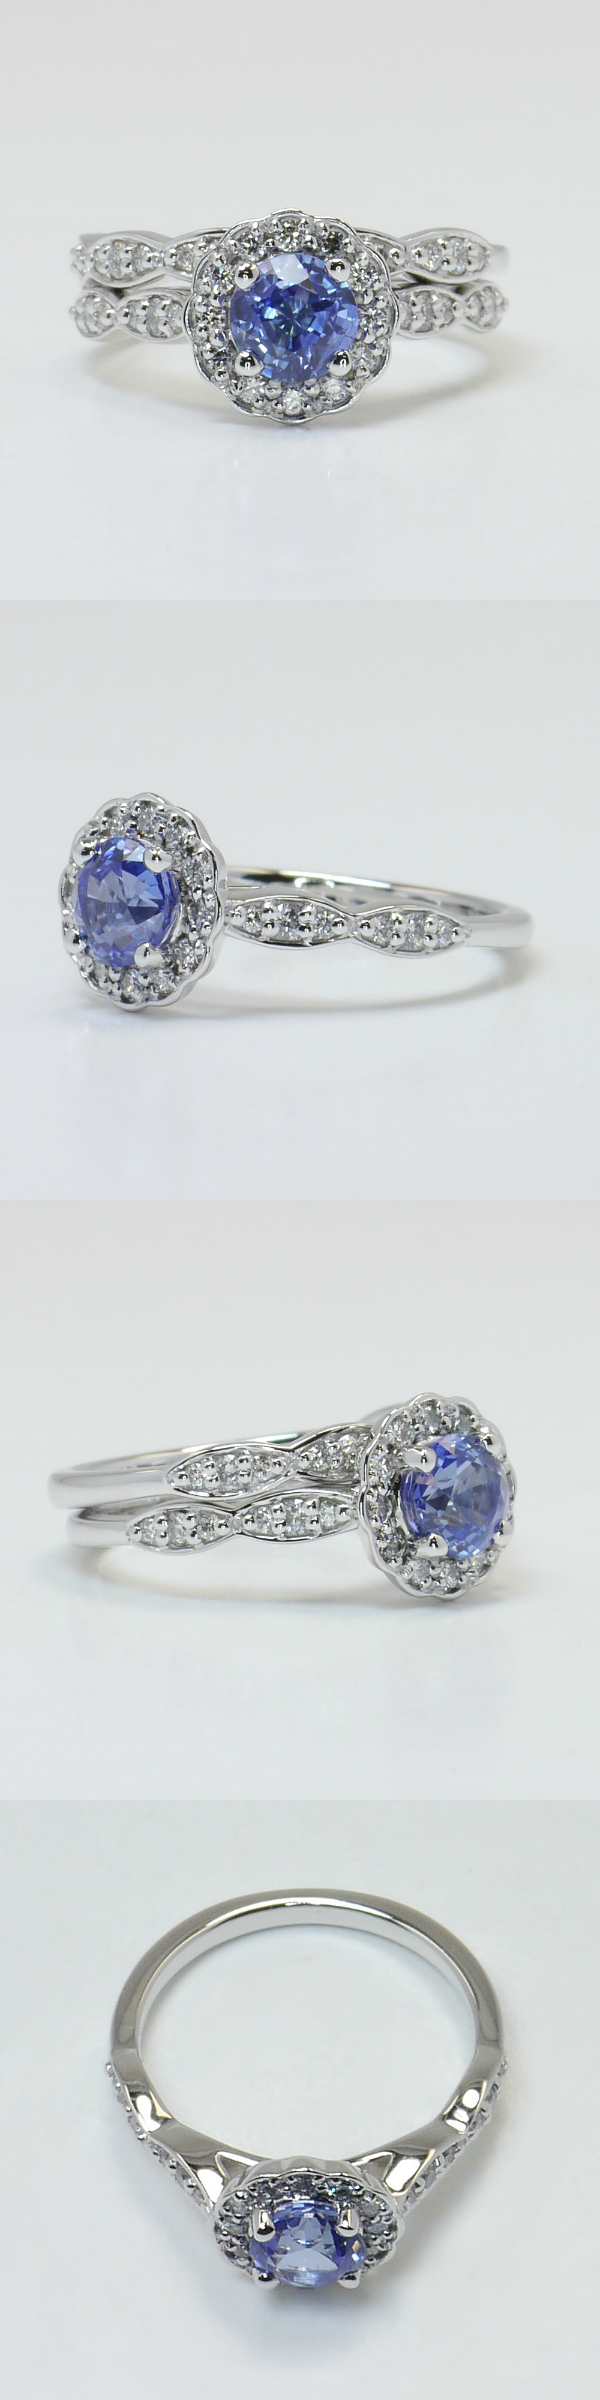 wedding unique william kate princess engagement sapphire diana cost blue of ring